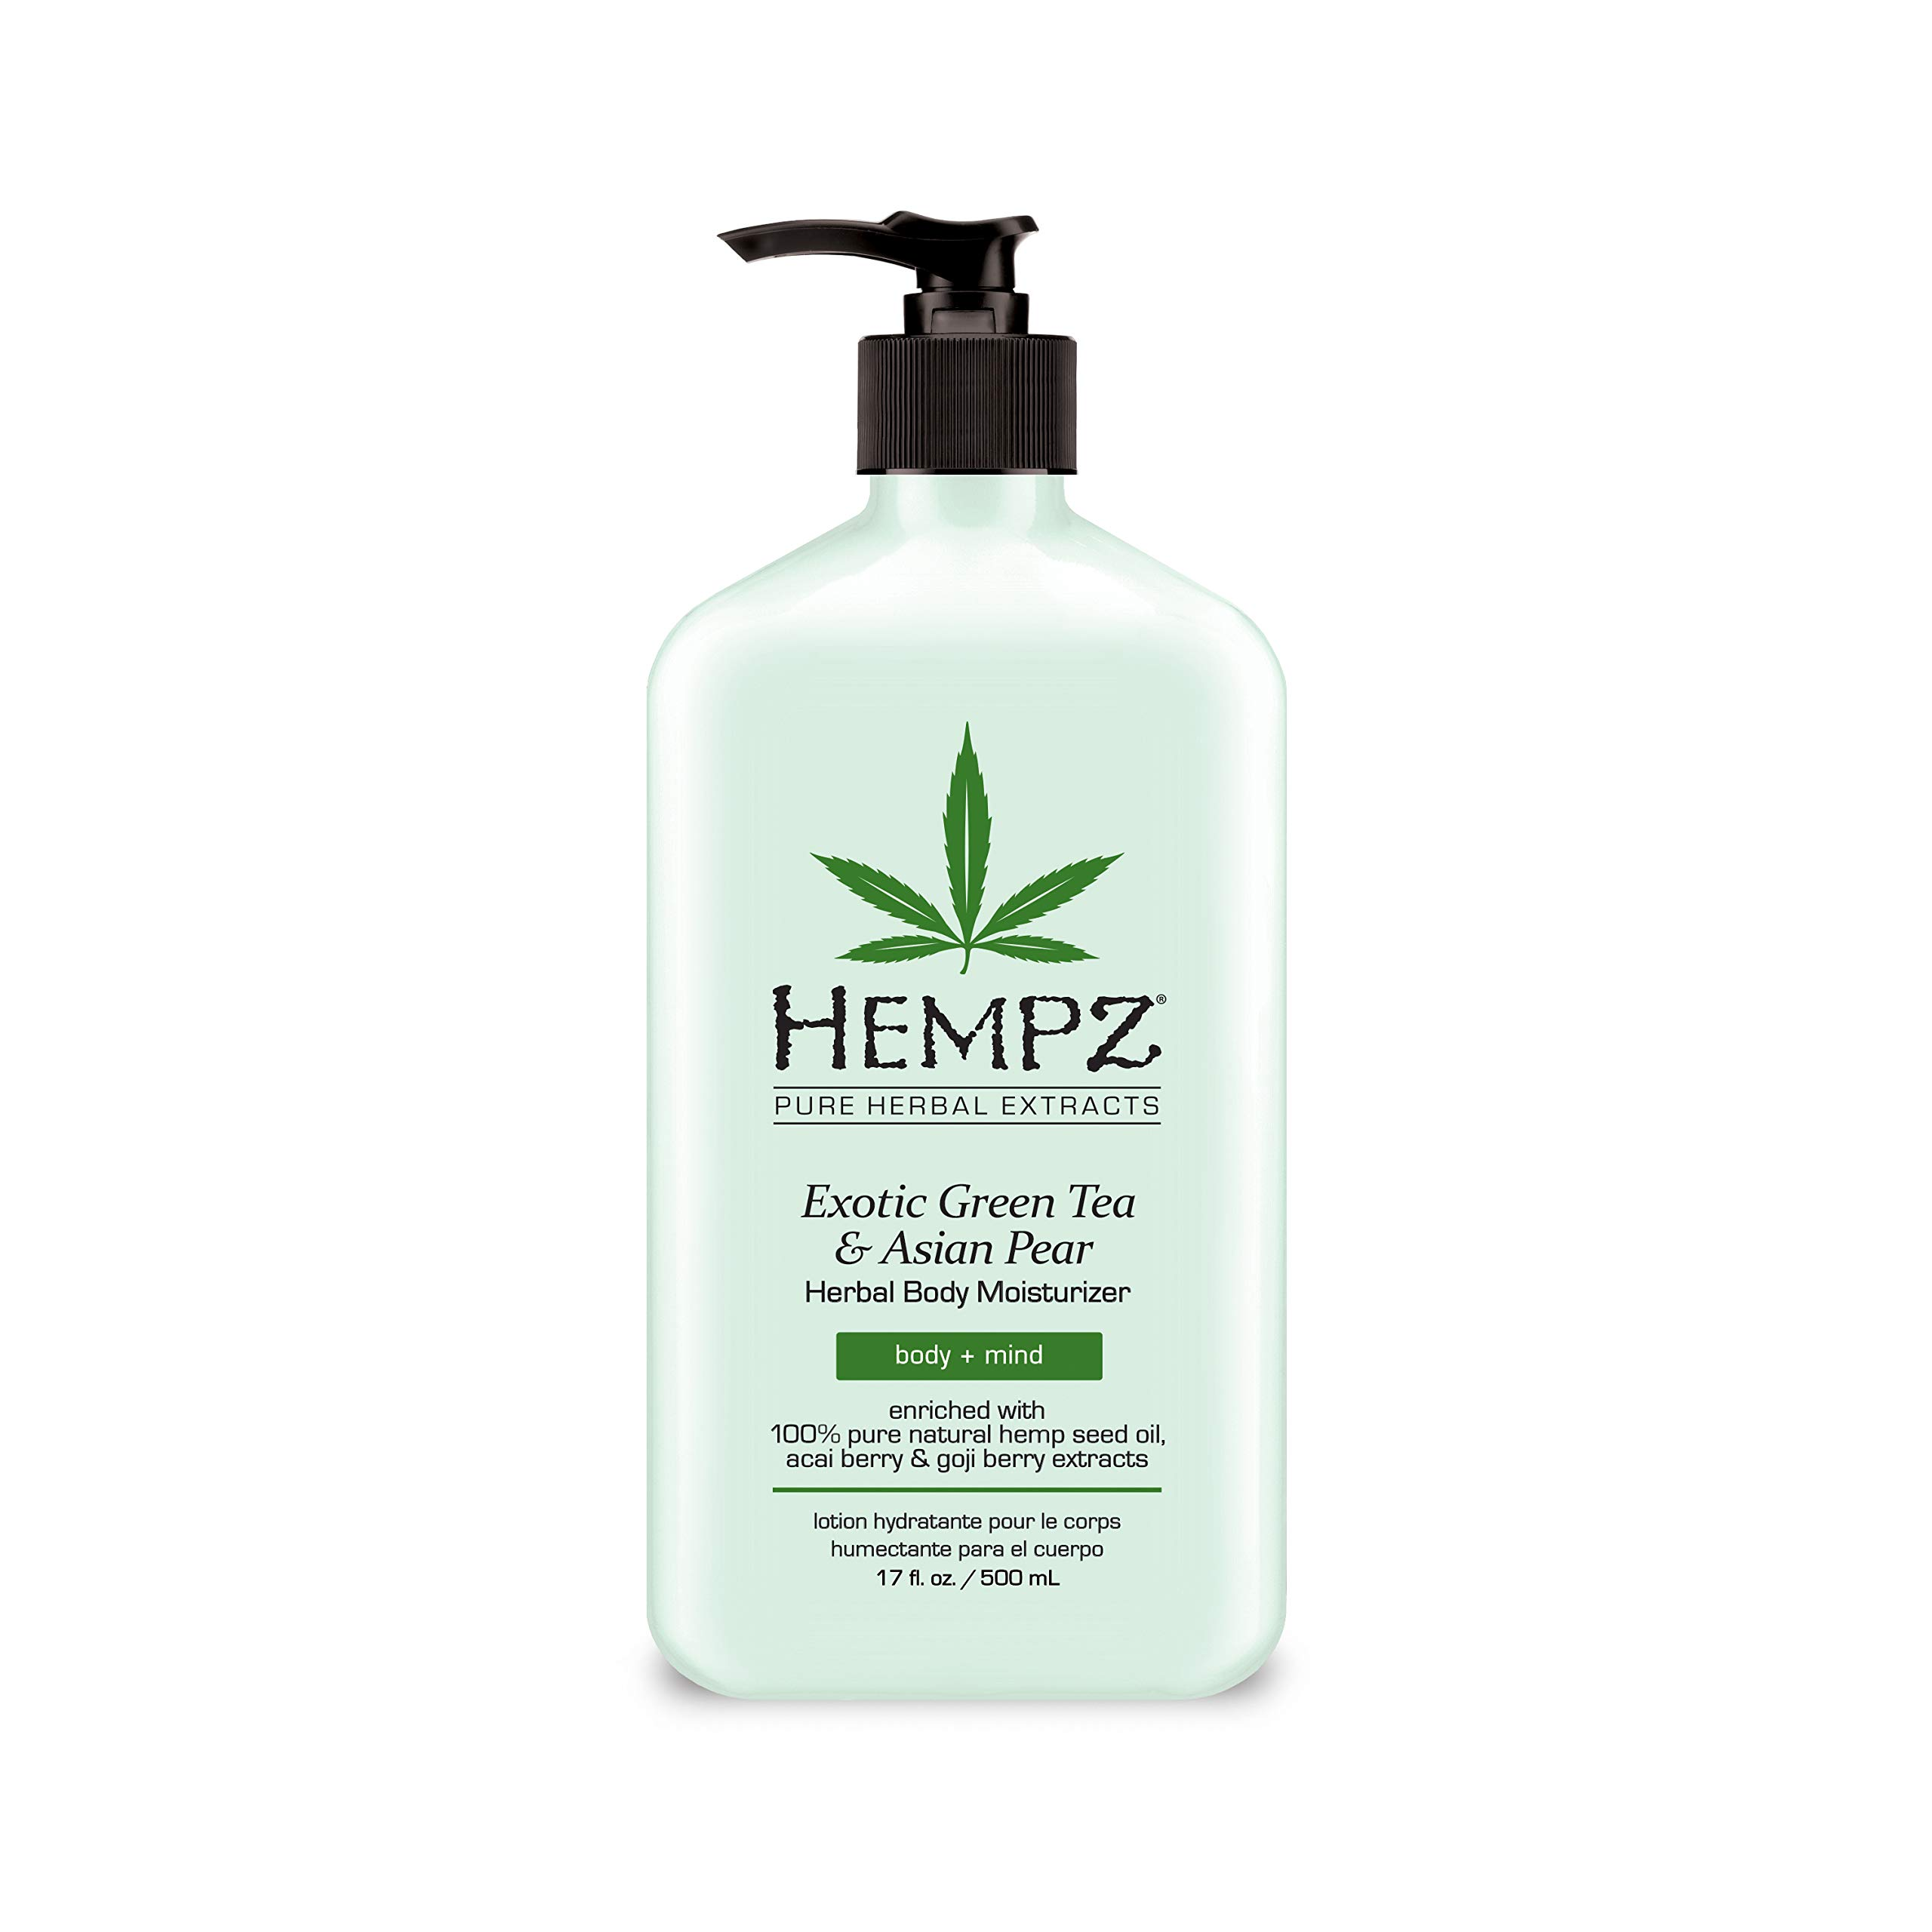 Hempz Exotic Natural Herbal Body Moisturizer with Pure Hemp Seed Oil, Green Tea and Asian Pear, 17 Fluid Ounce - Pure, Nourishing Vegan Skin Lotion for Dryness and Flaking with Acai and Goji Berry by Hempz